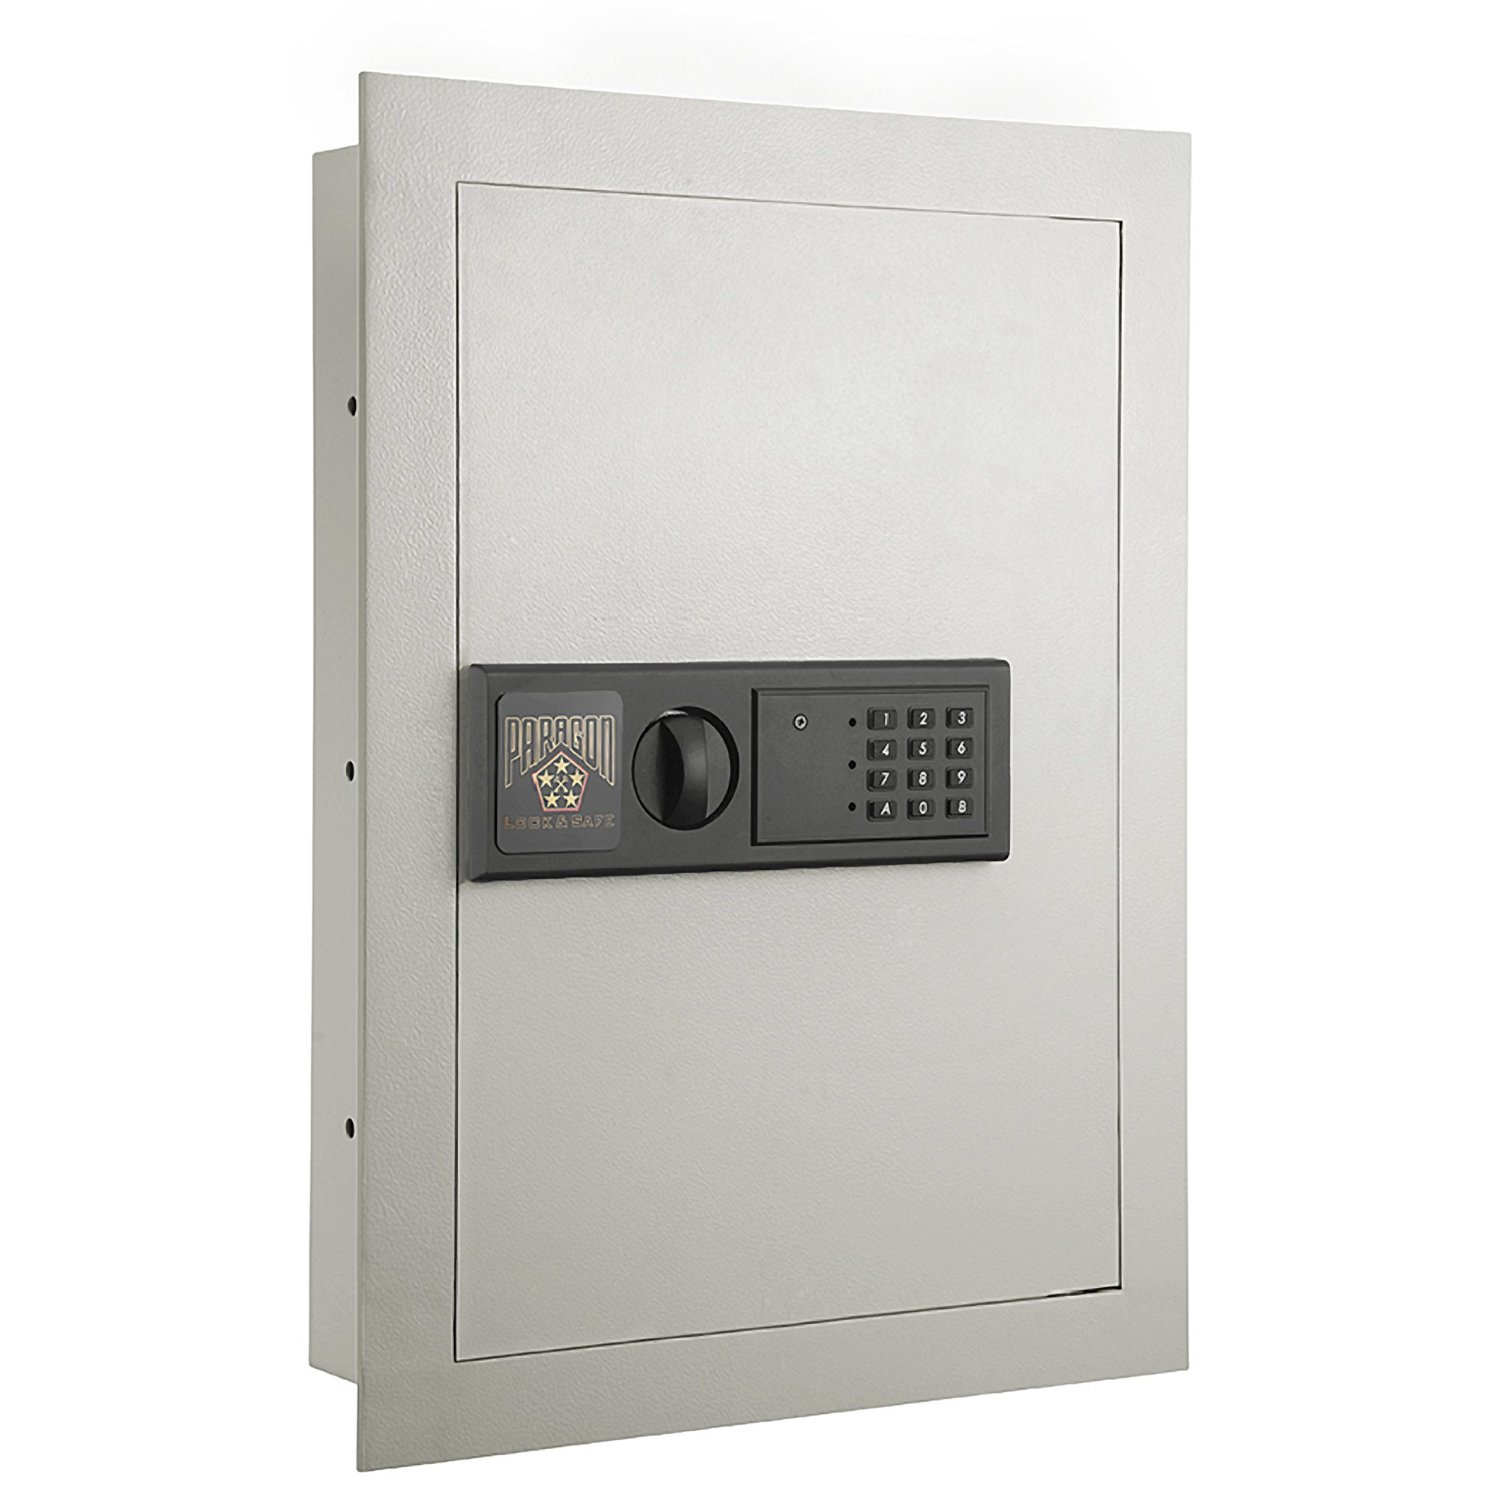 Paragon Lock and Safe 7750 Deluxe Wall Safe